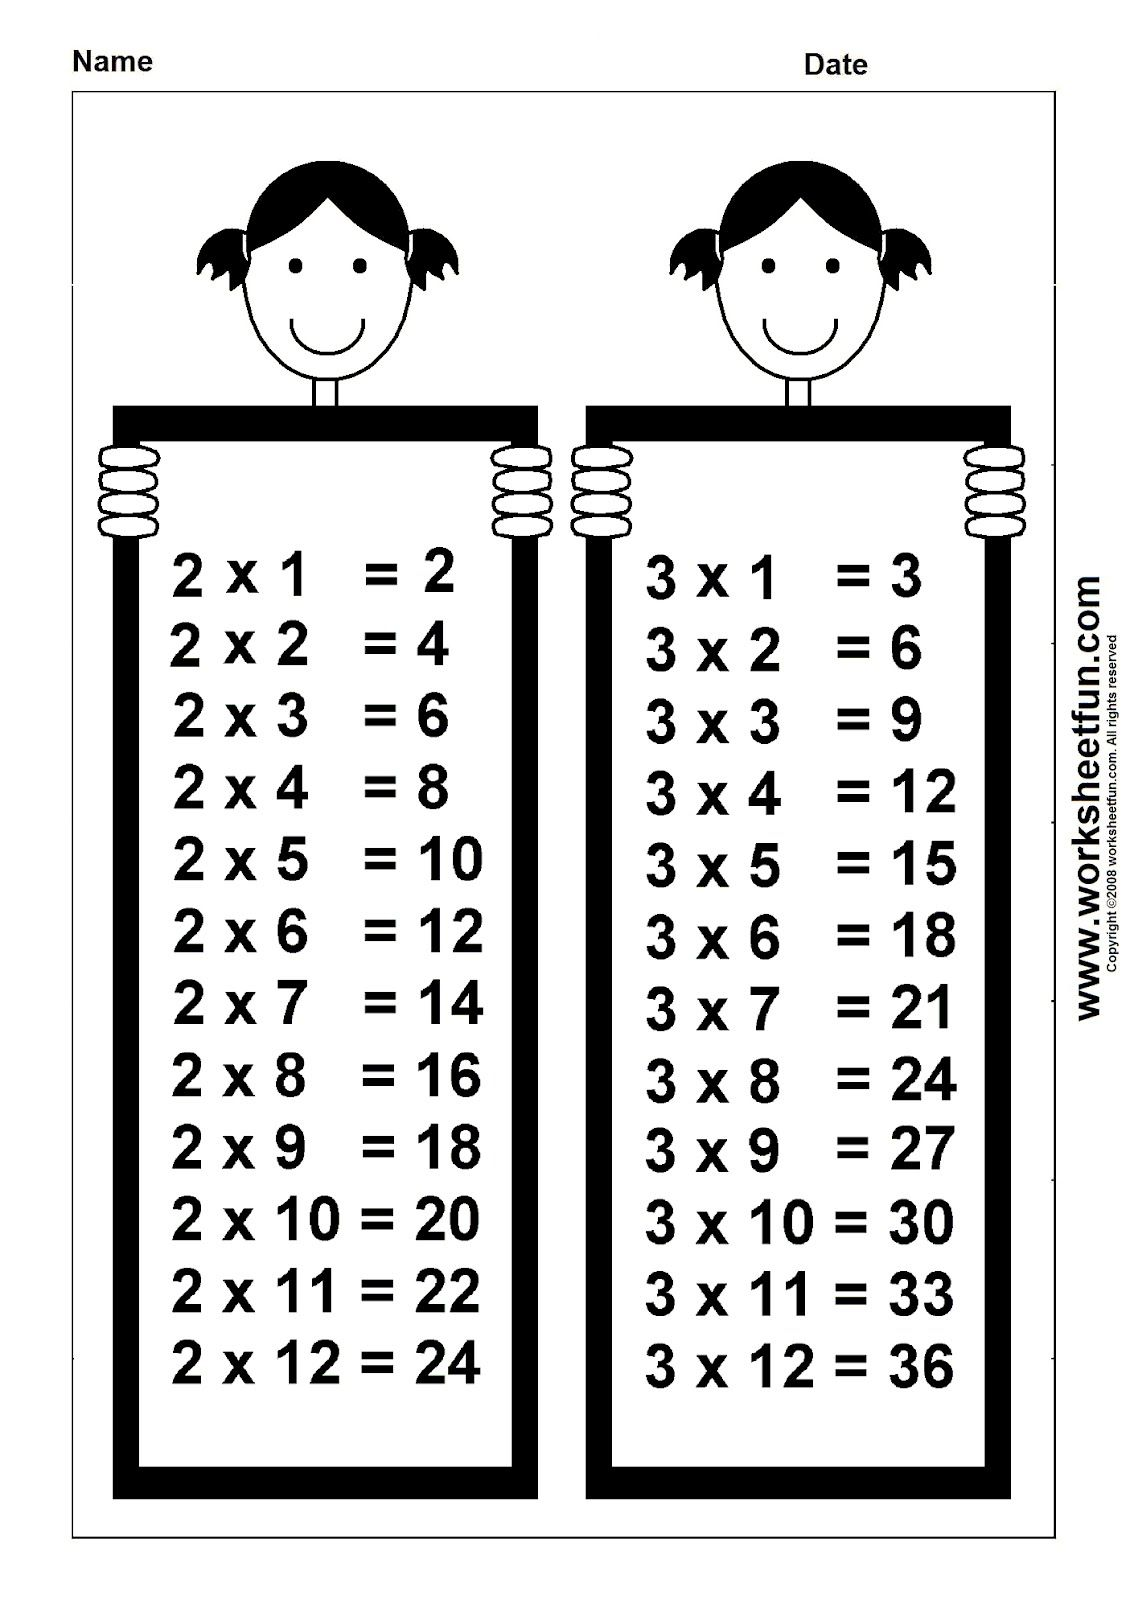 Worksheets Maths Tables 2 To 3 3rd grade math multiplication times tables 1s printable table worksheet